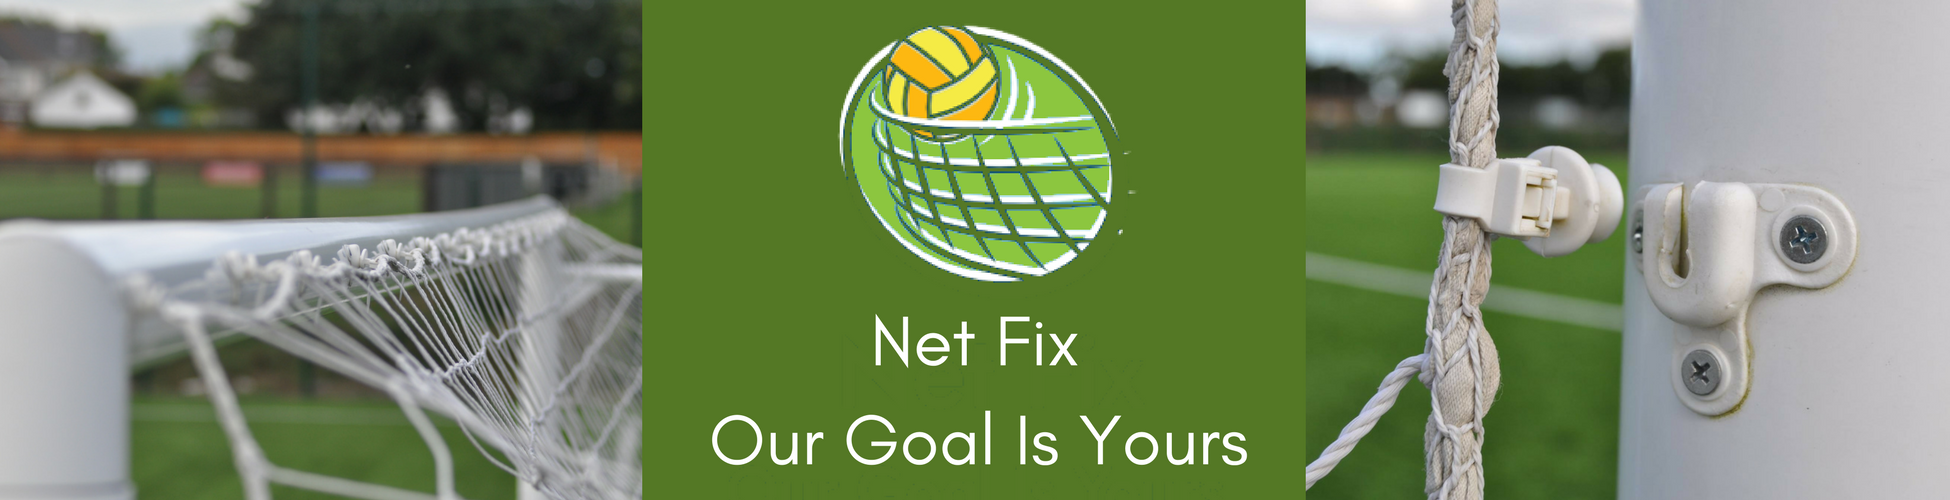 Our Goal is yours